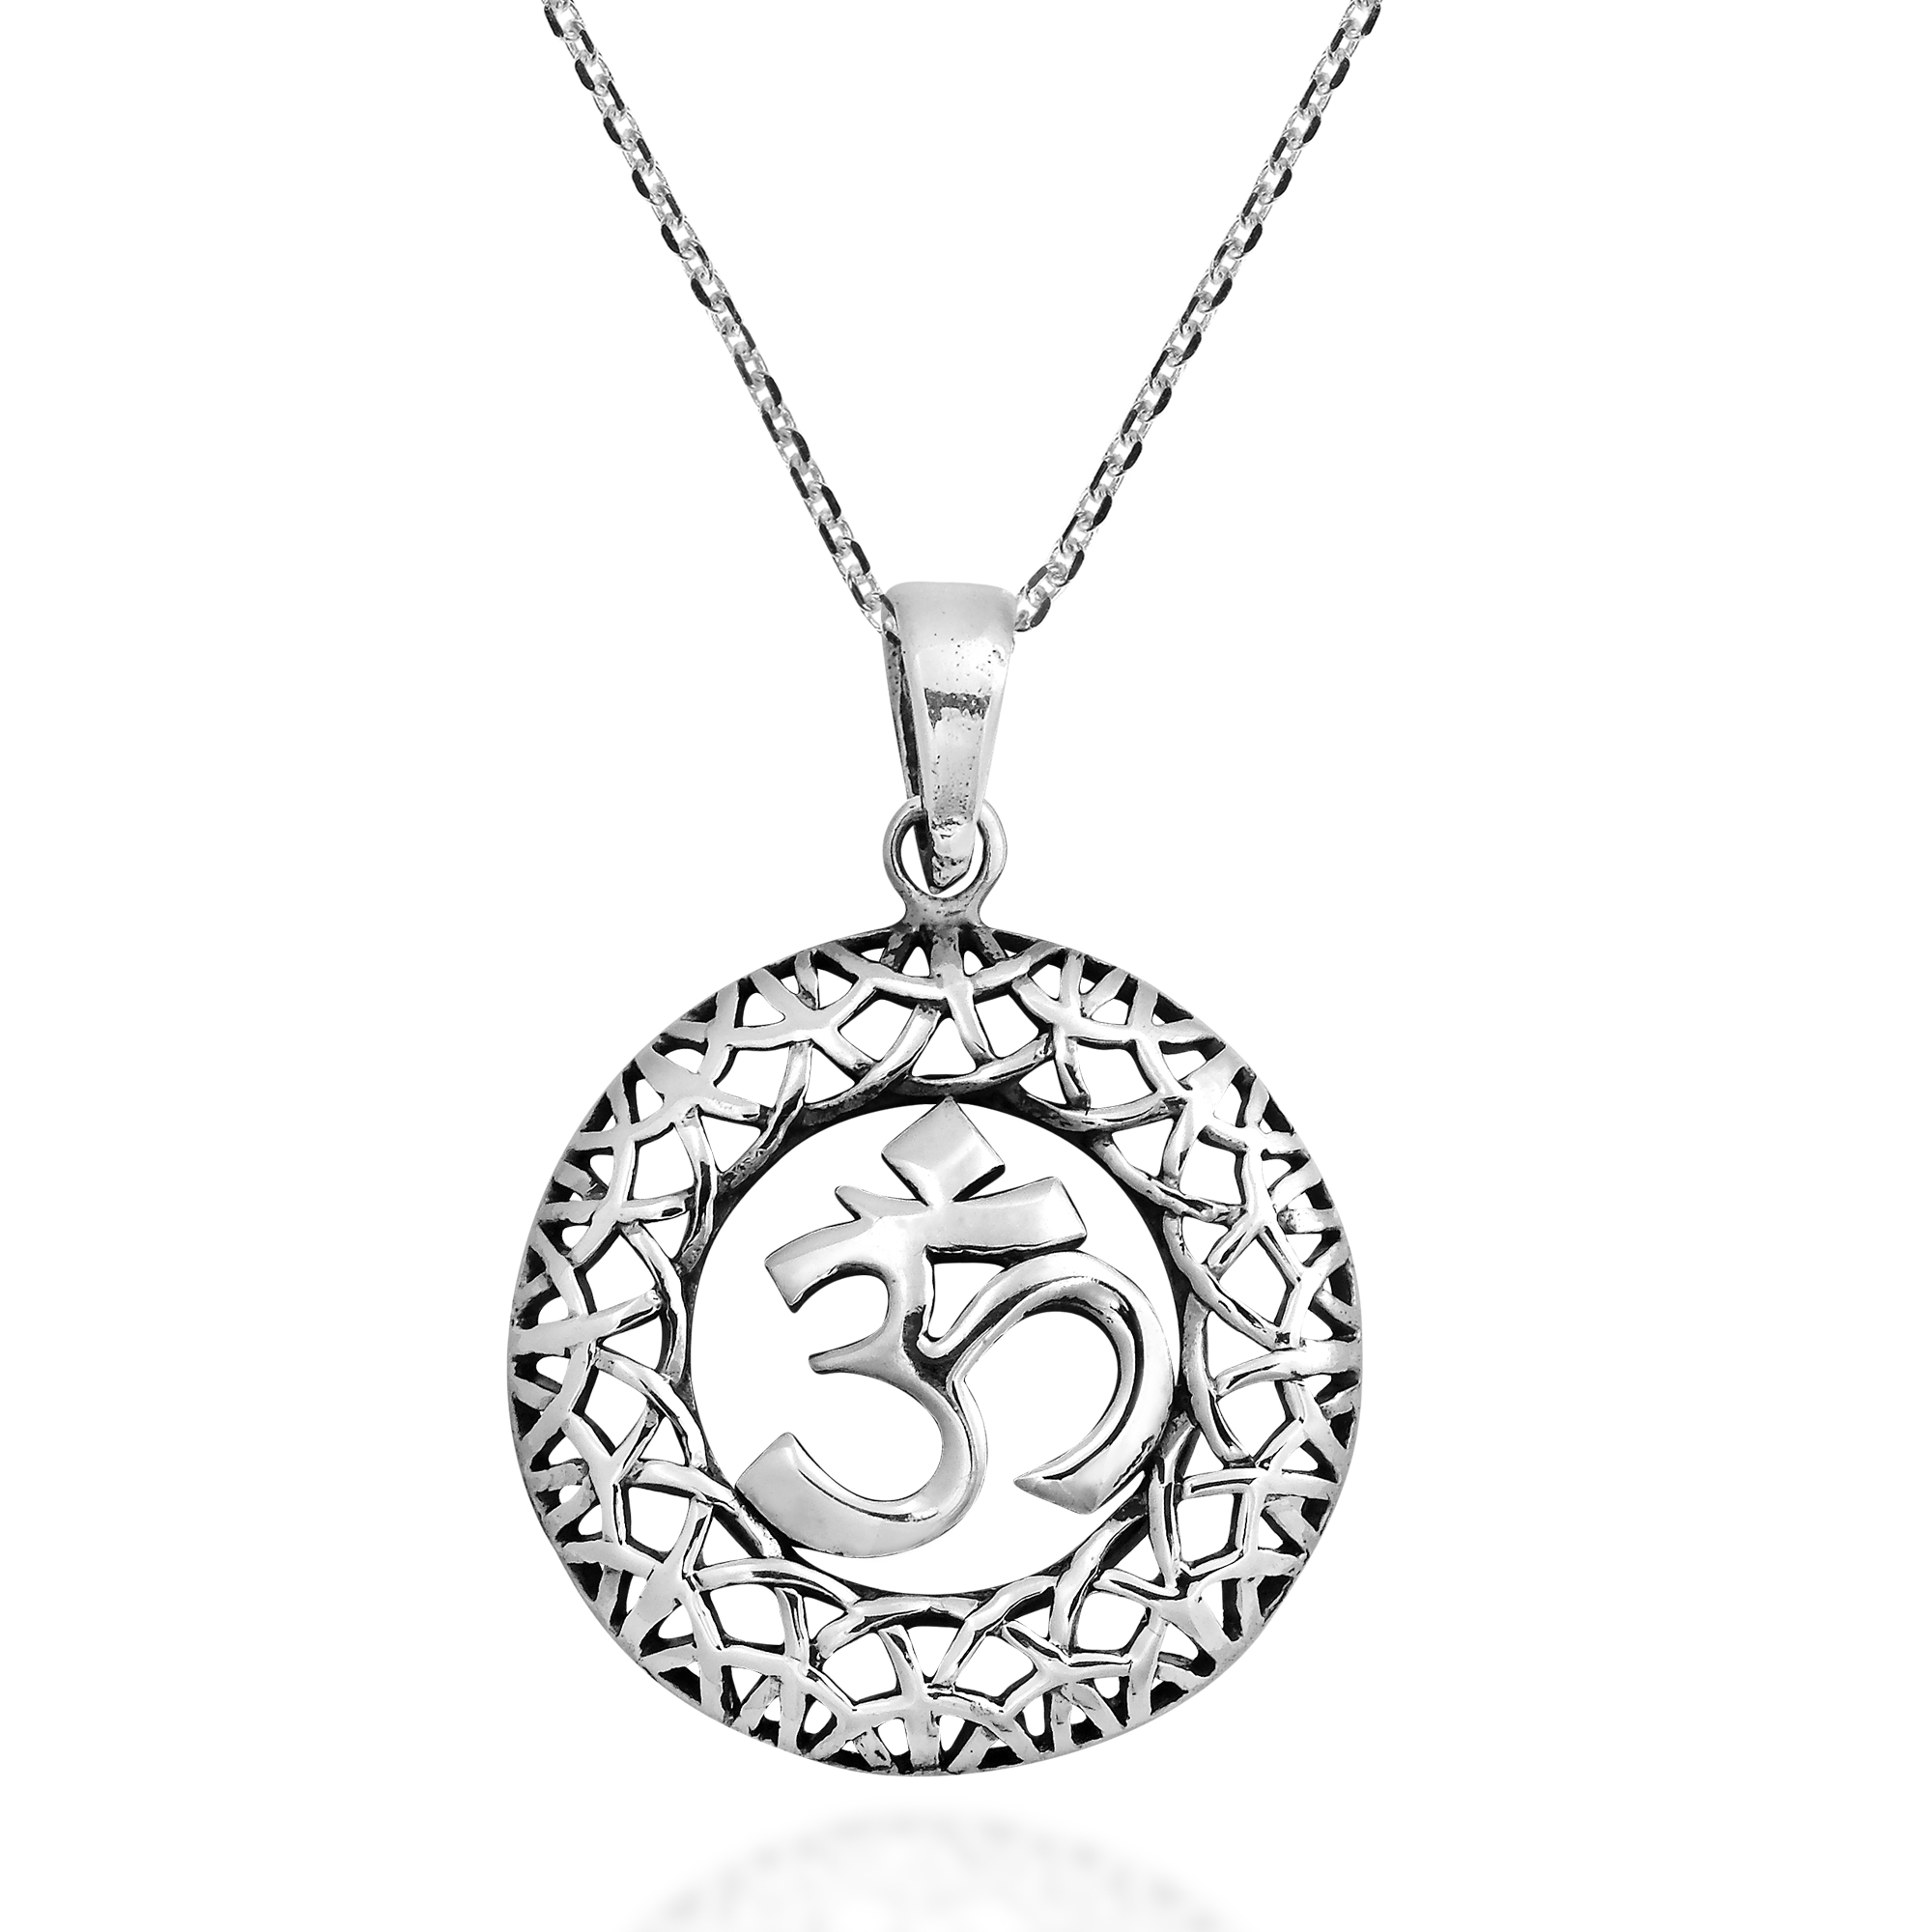 Intricate weave aum or om symbol sterling silver necklace aeravida the design features an 18 inch chain with a circular om aum pendant the om or aum is an ancient symbol of aloadofball Gallery